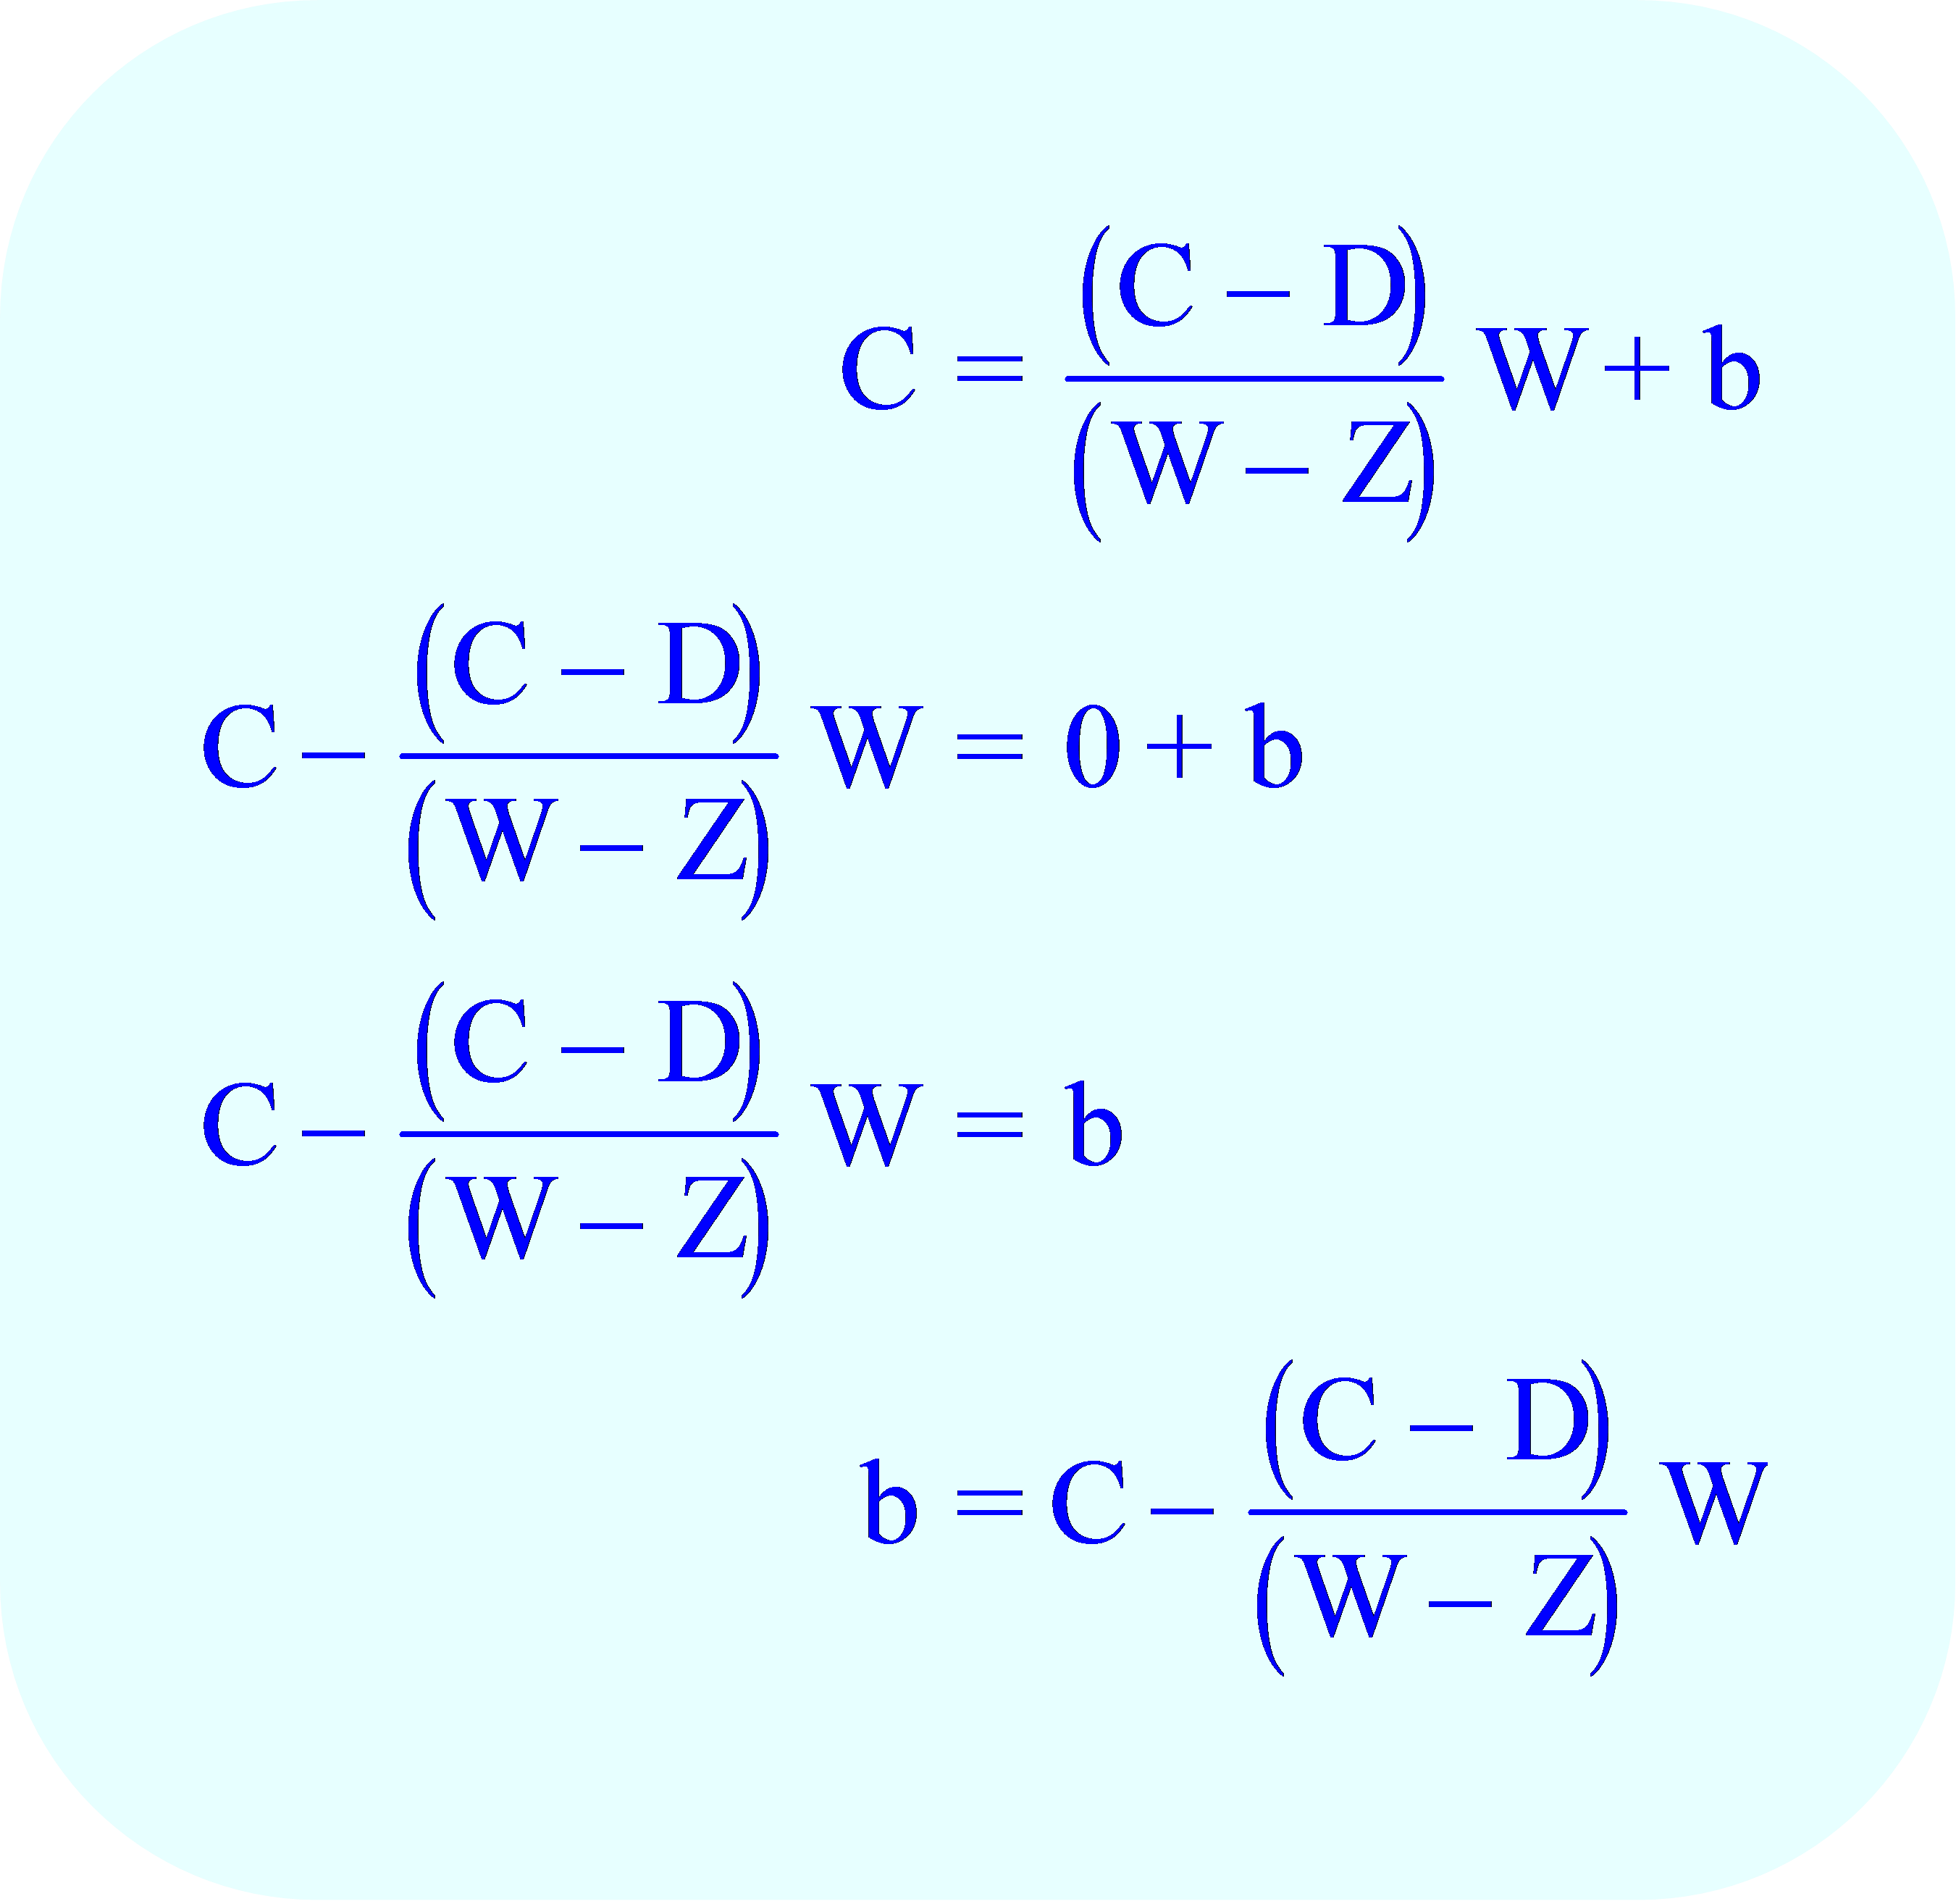 Subtract from each side of the equation